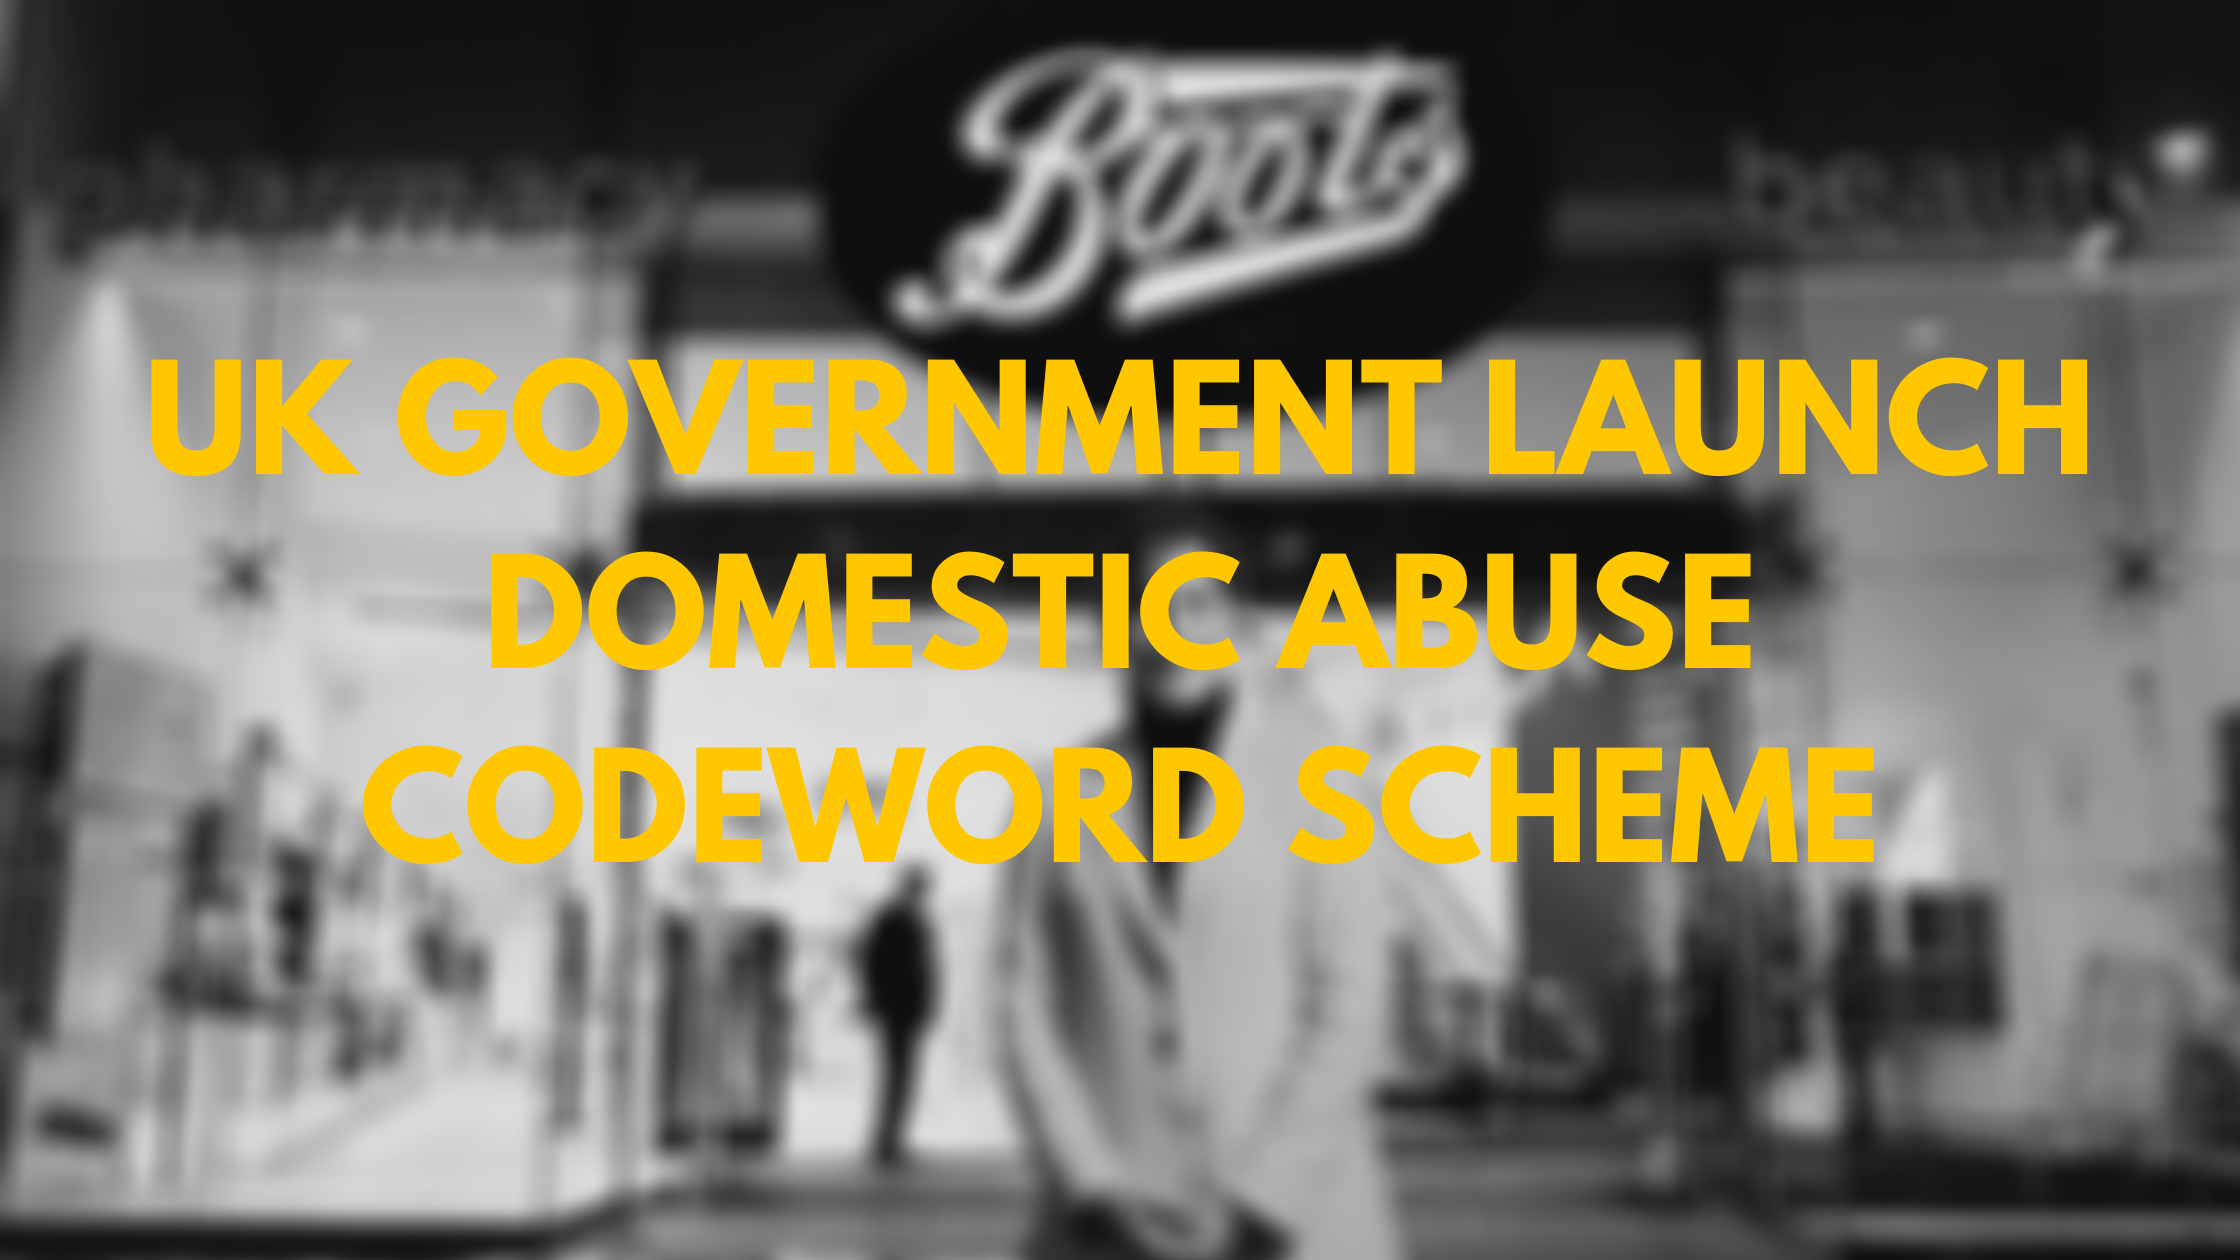 UK Government Launch Domestic Abuse Codeword Scheme